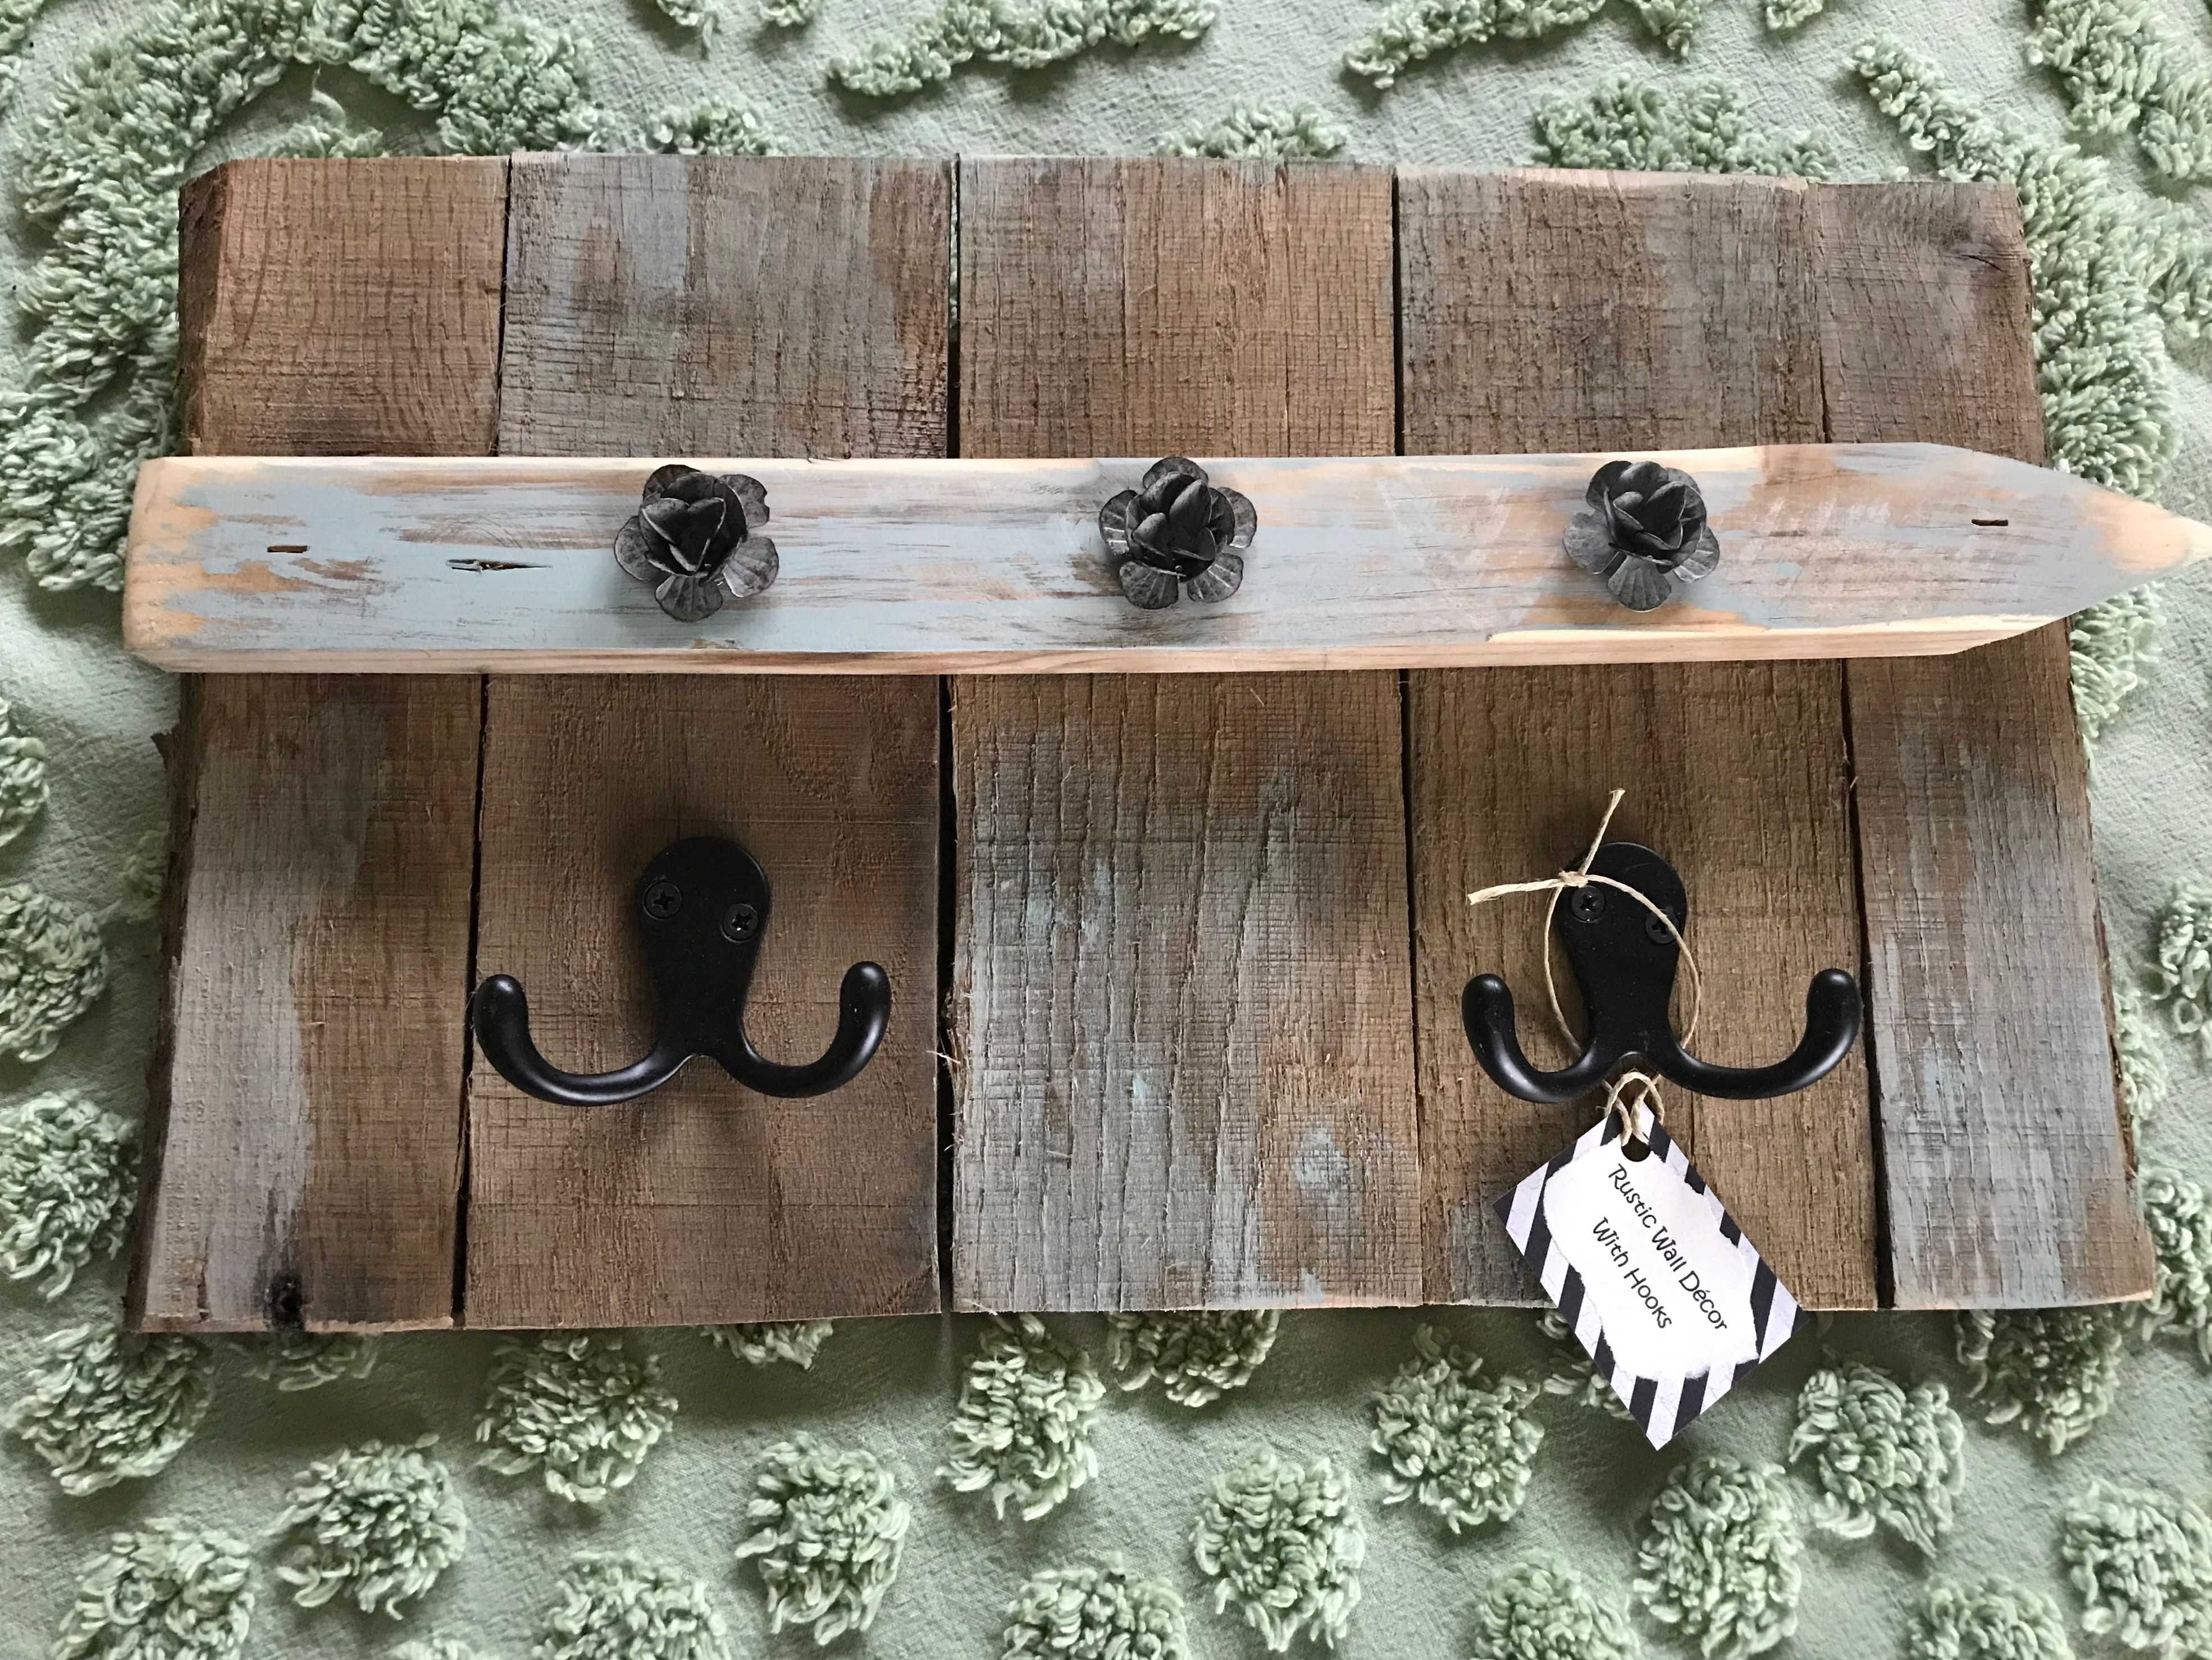 Pallet Wood Wall Decor With Hooks Wood Pallet Wall Wood Wall Decor